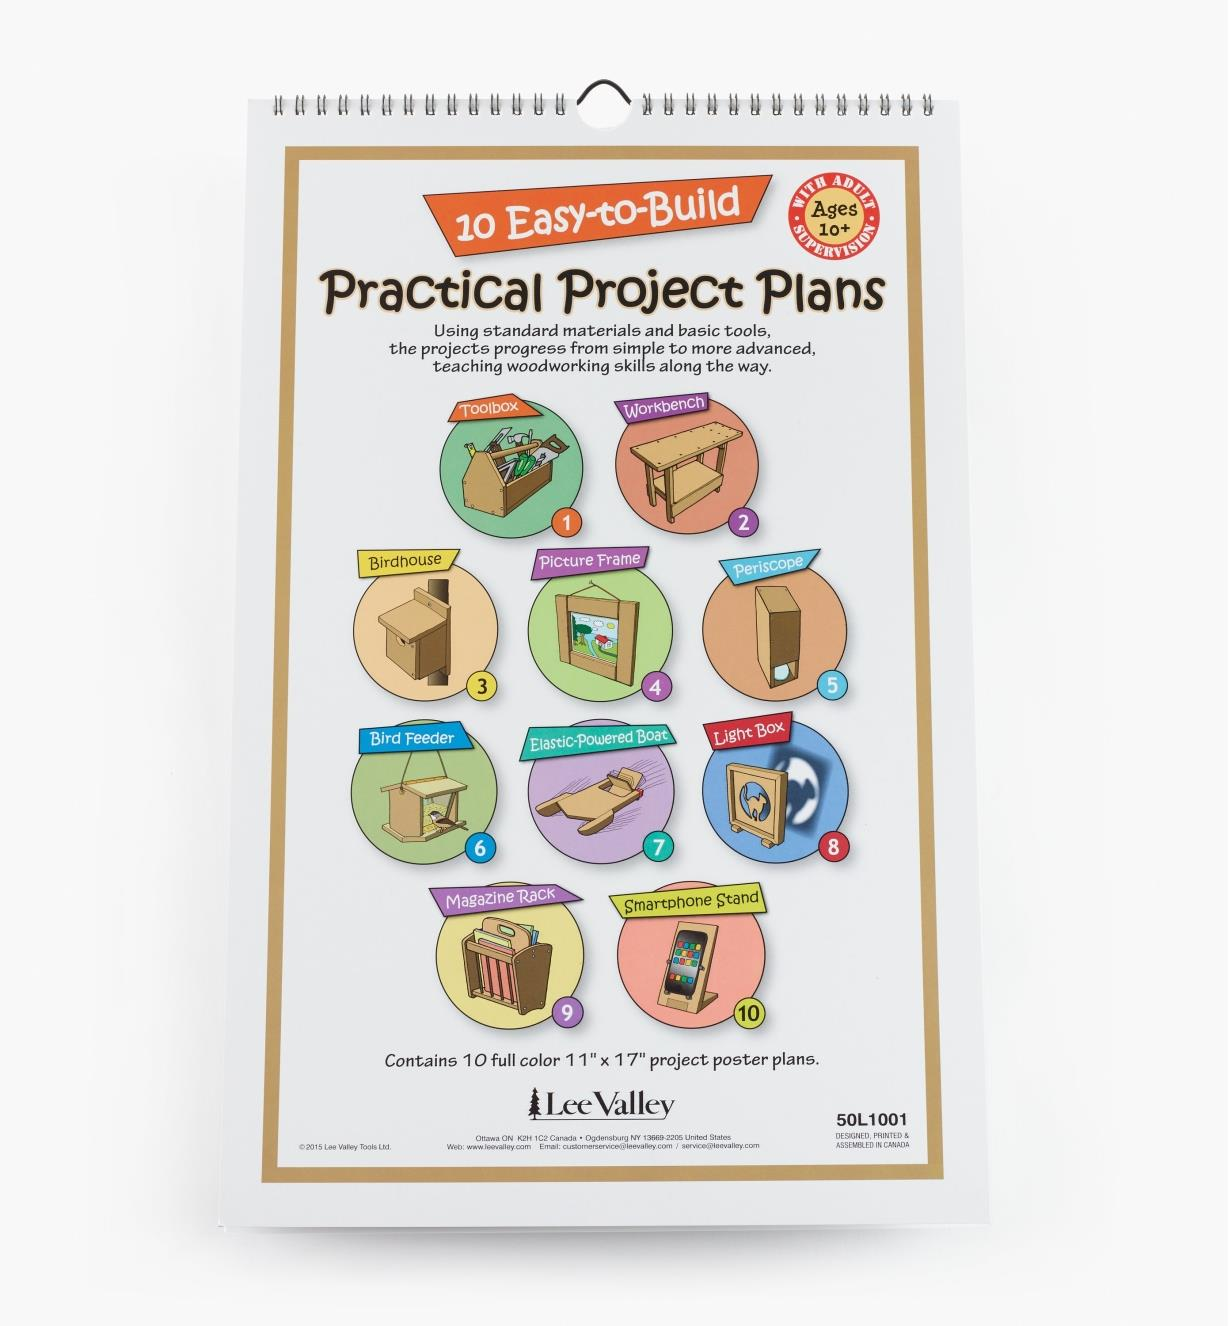 50L1001 - 10 Easy-to-Build Practical Project Plans